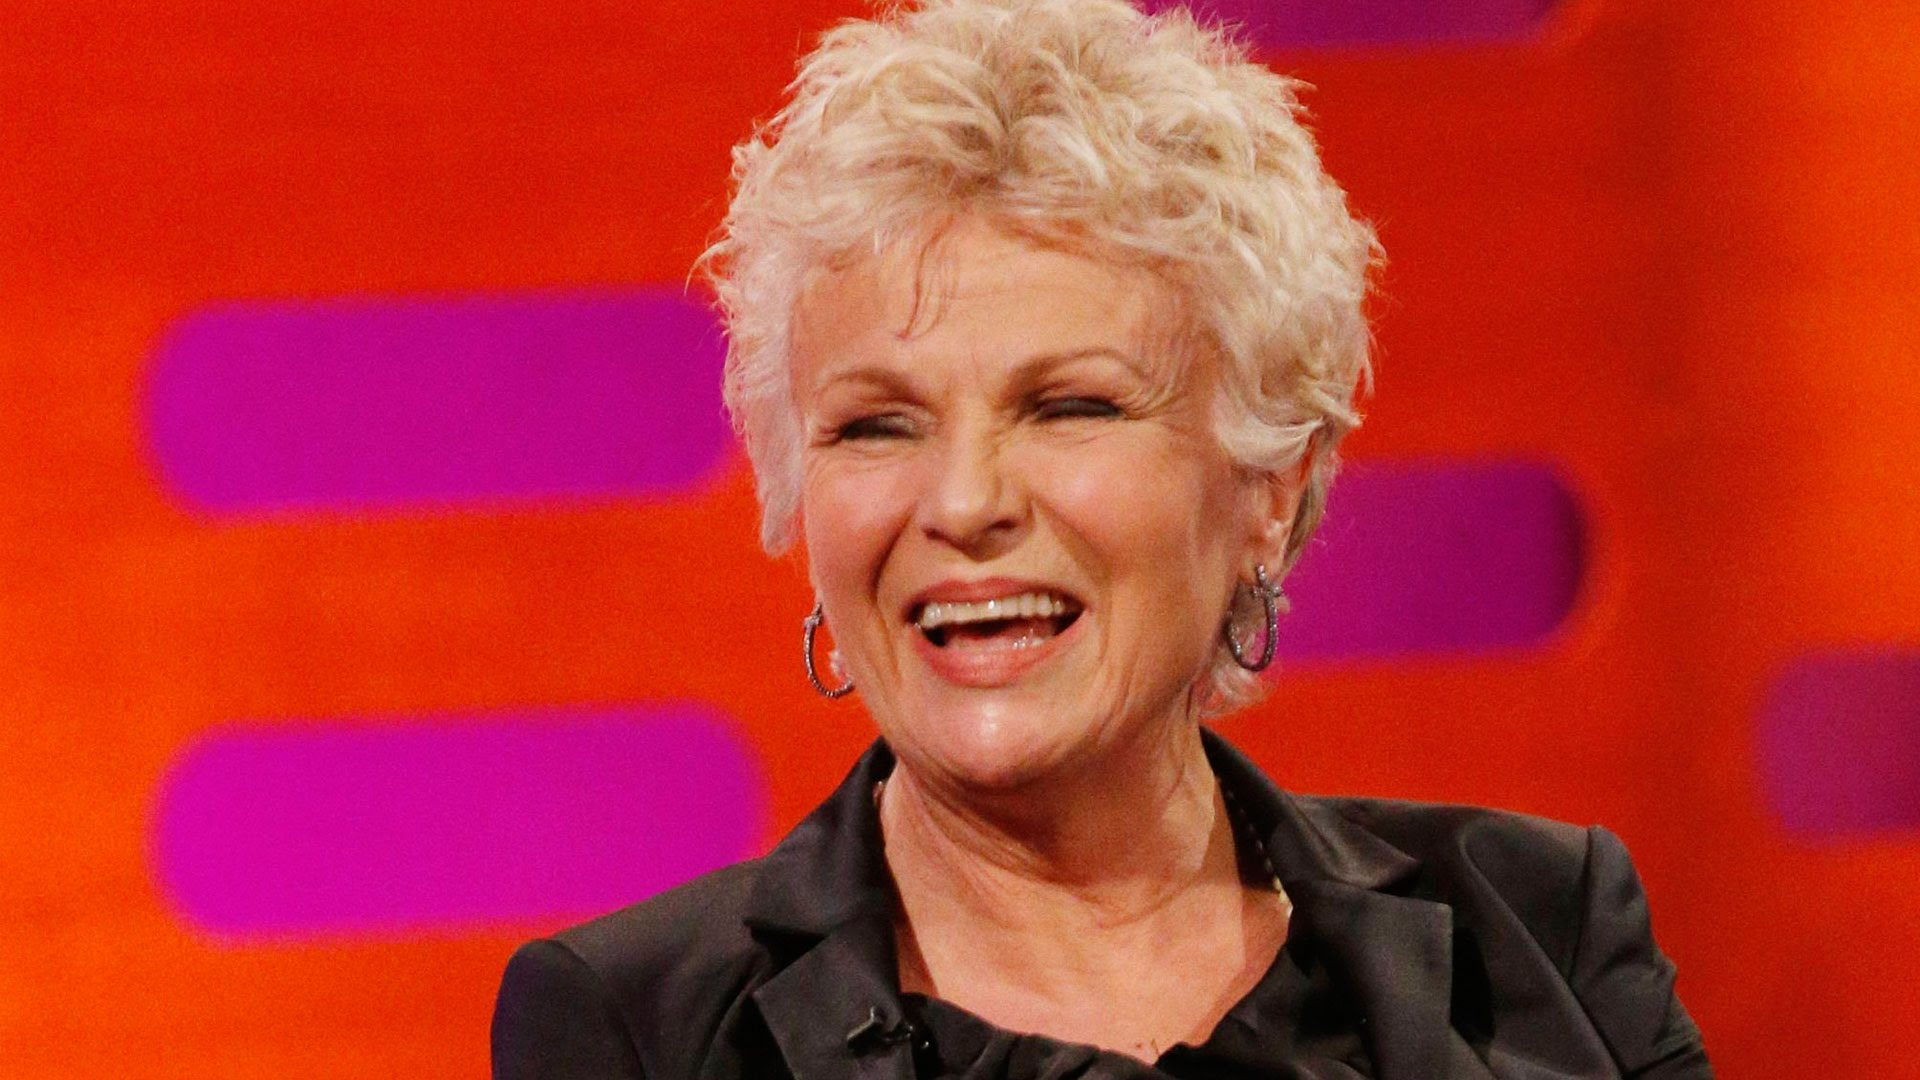 Julie Walters HQ wallpapers